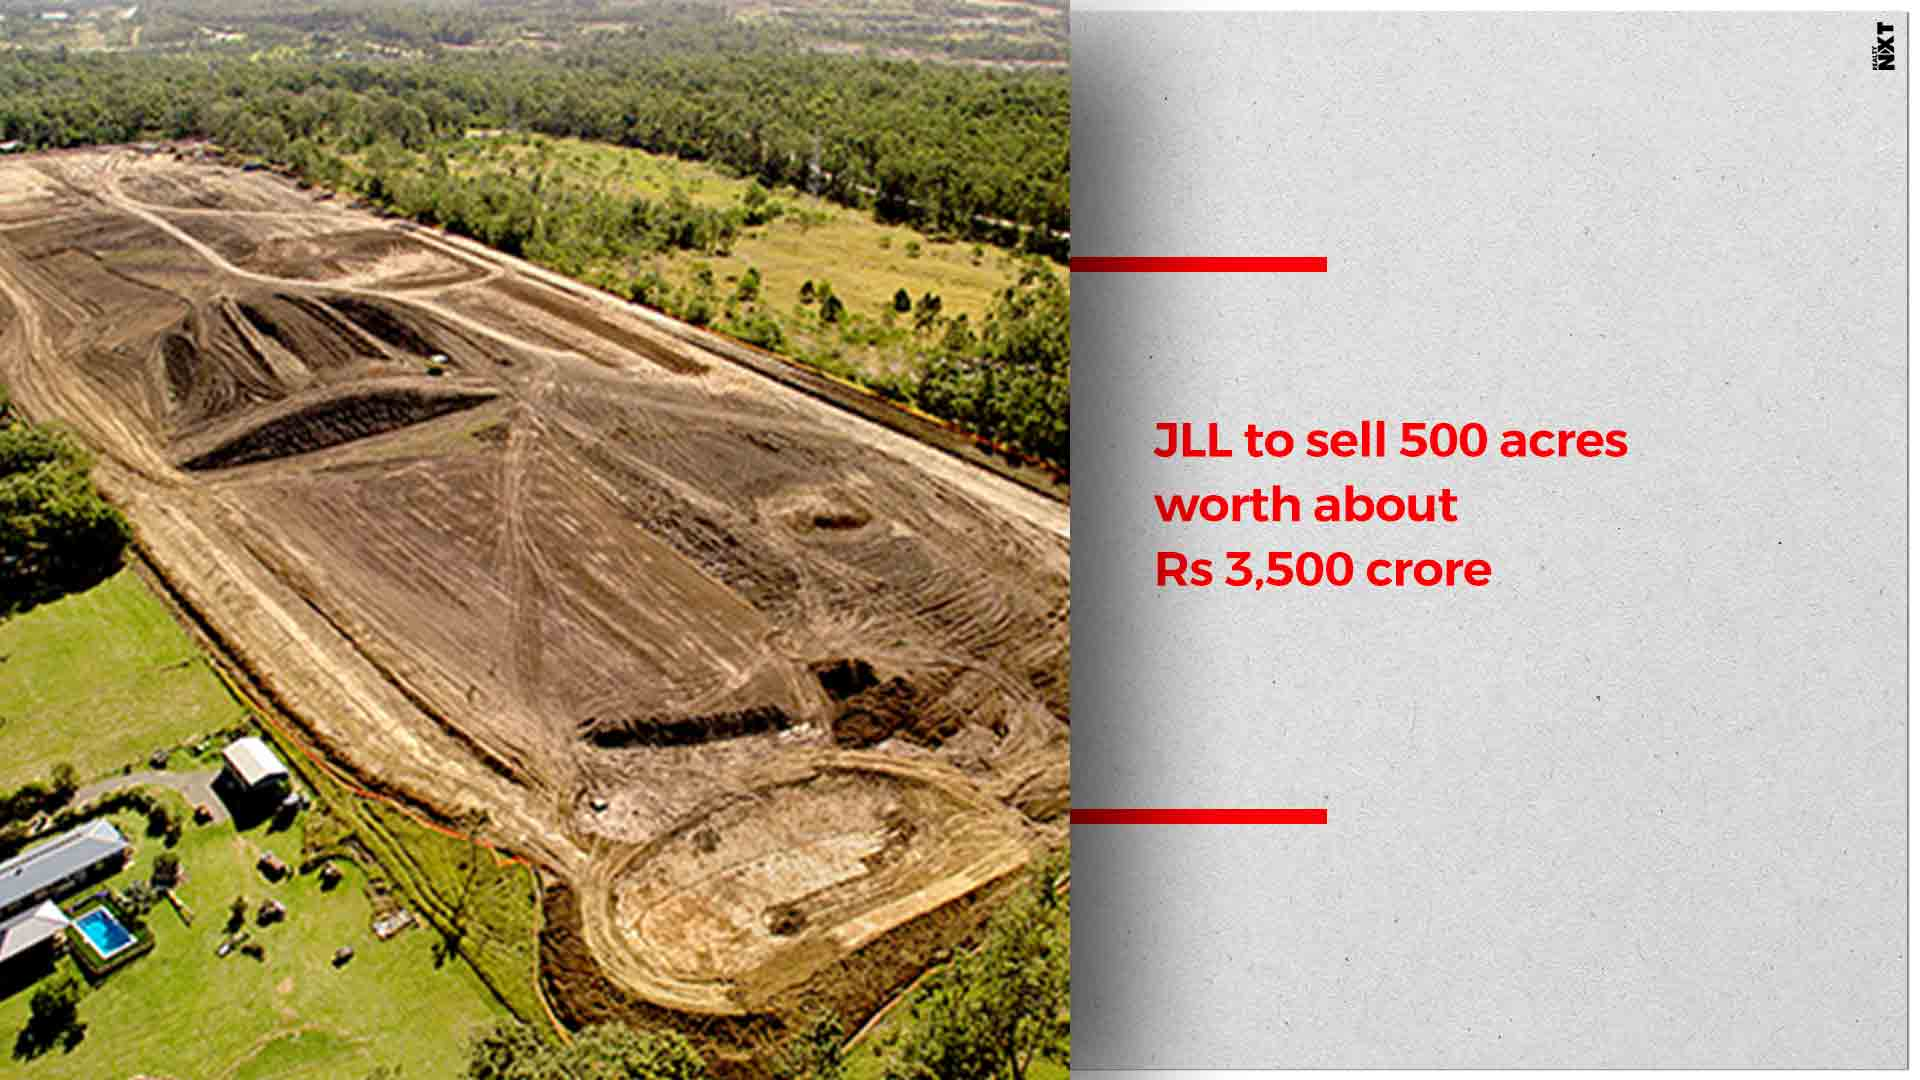 JLL to sell land